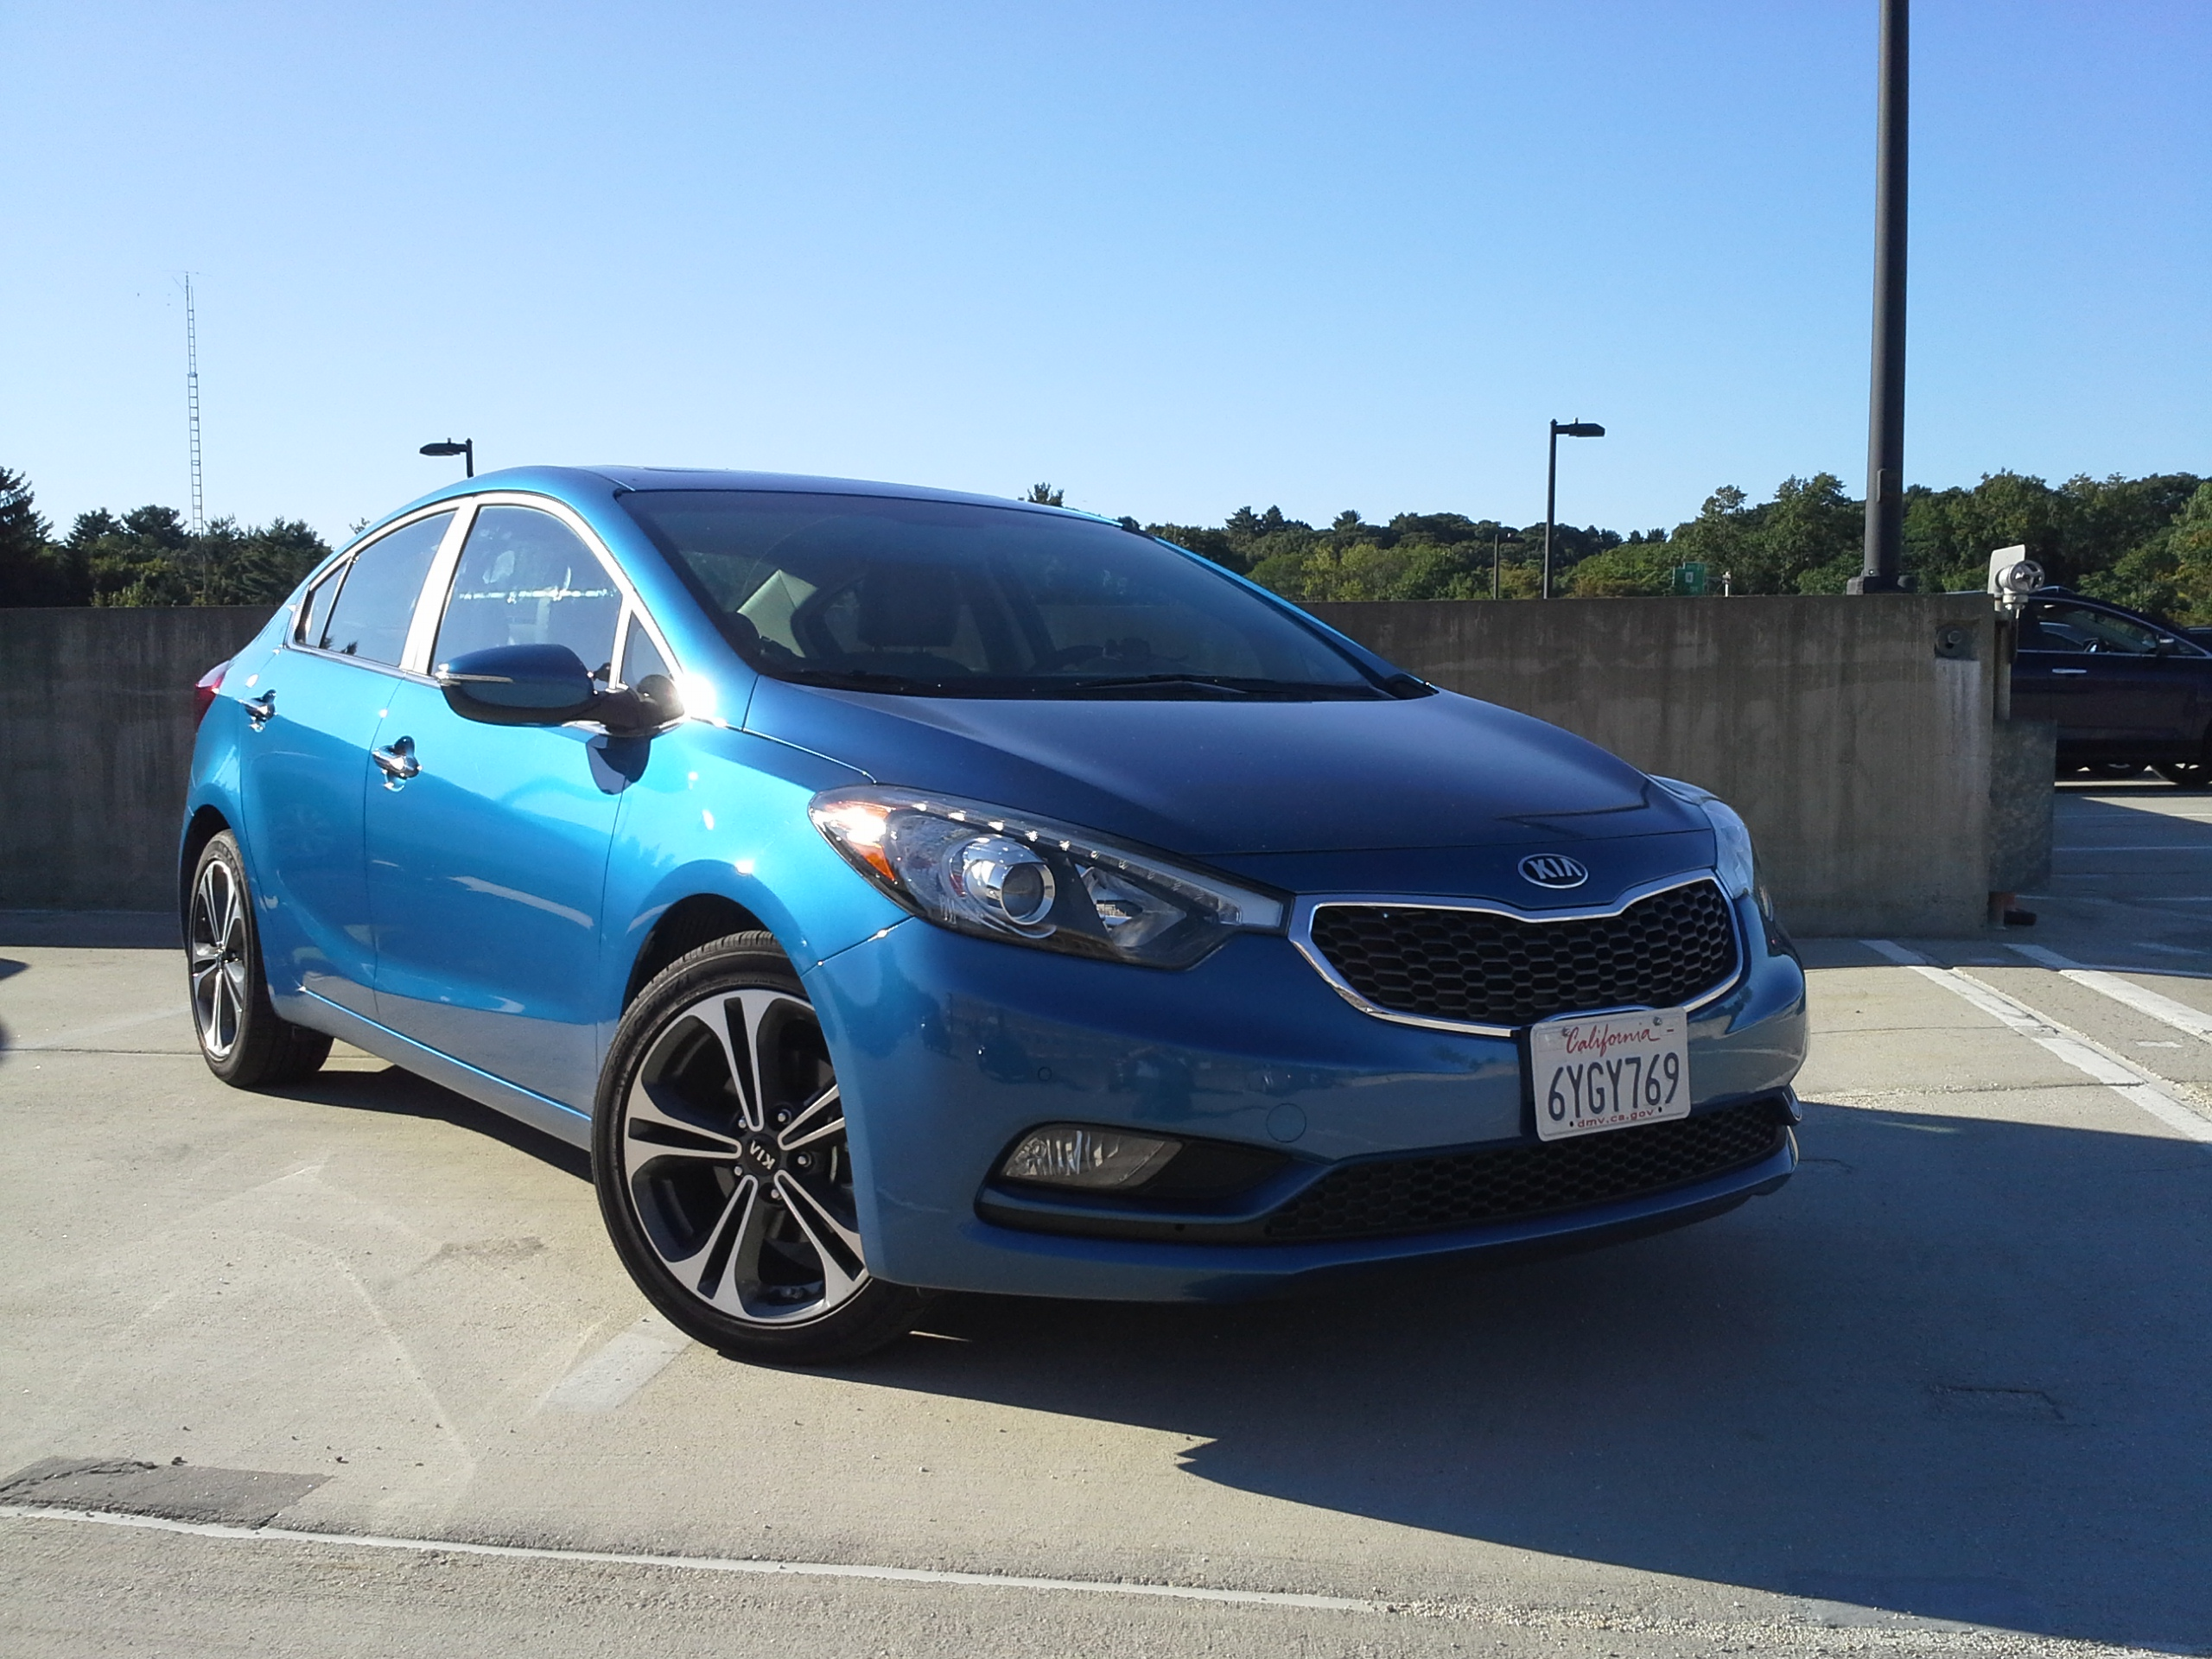 front new in kias kia autos unveiled fortune gets battery bigger thursday the with a plug unveils november niro on hybrid